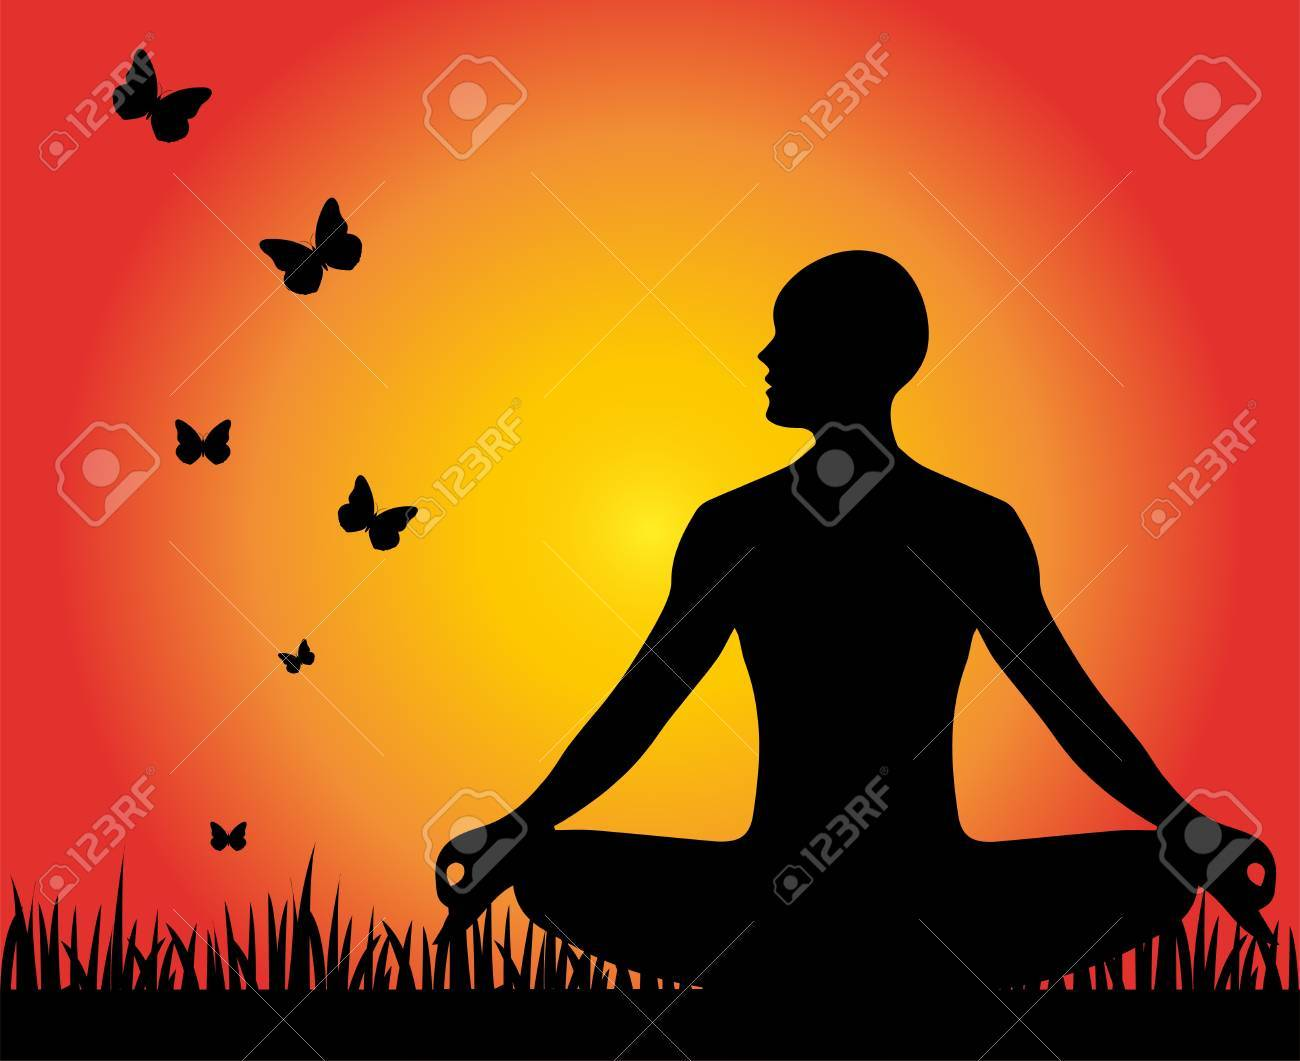 human silhouette in yoga position Stock Vector - 22151081